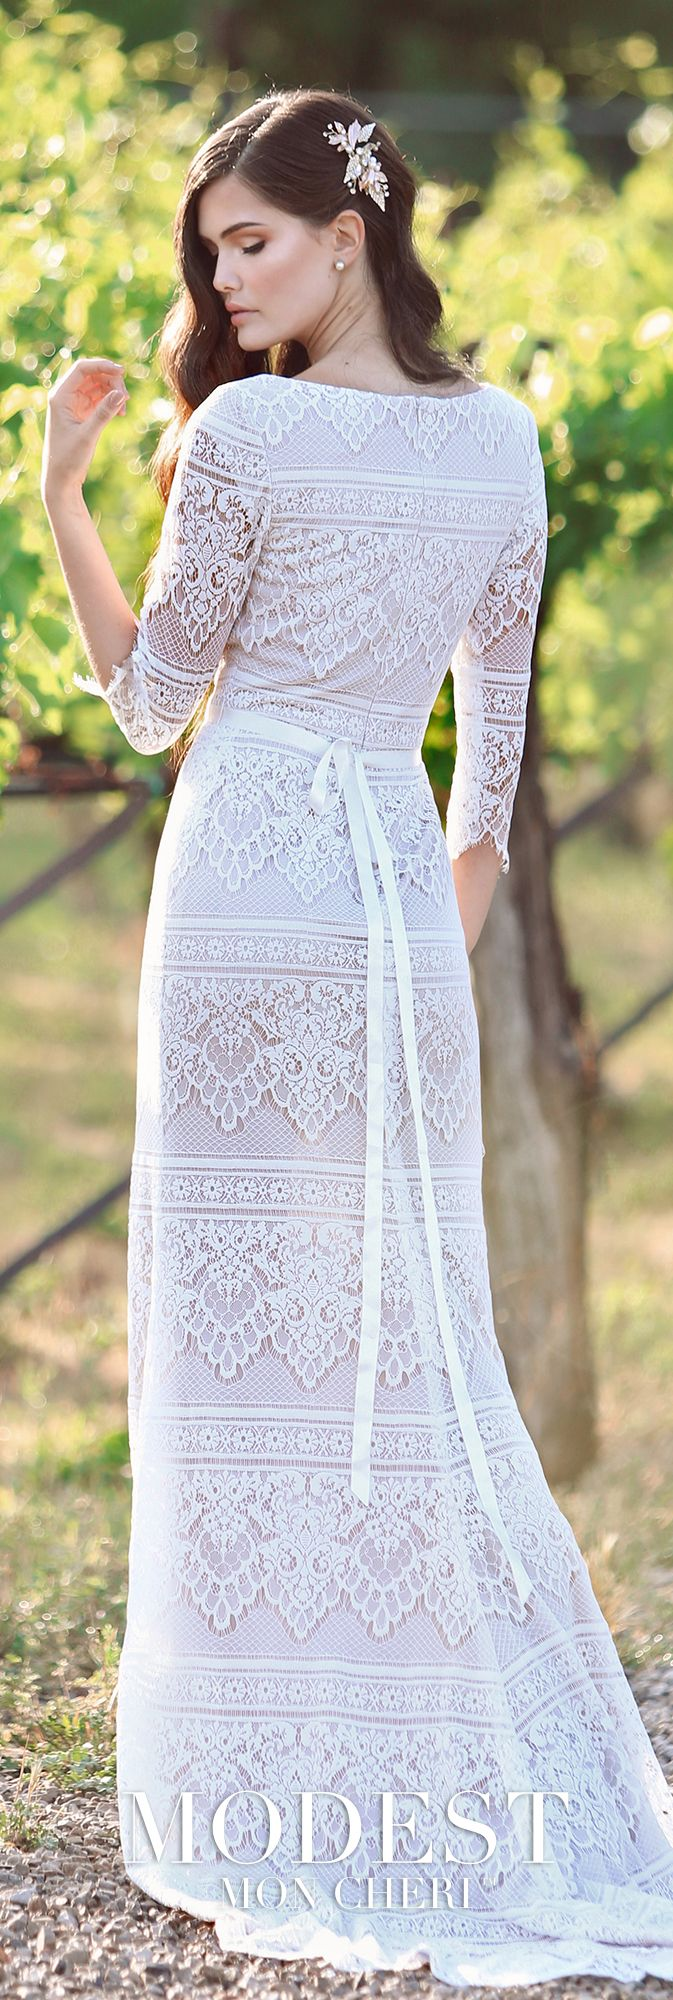 Tr modest wedding embroidered lace and scalloped edge